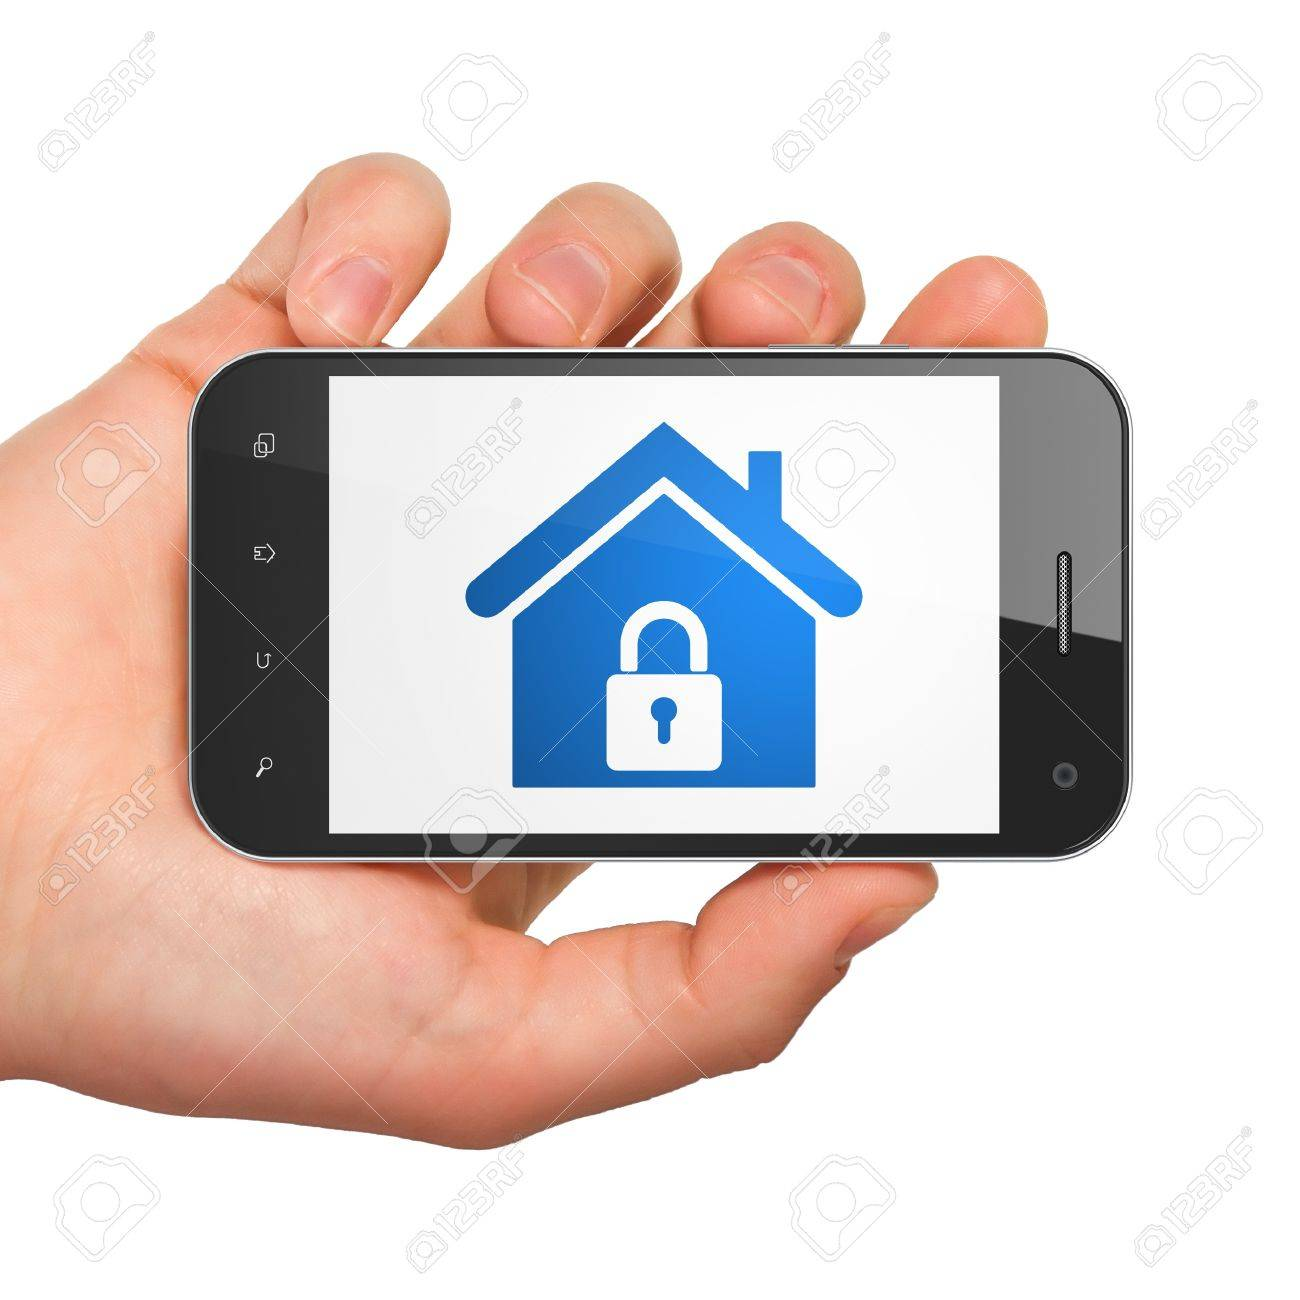 Protection concept  hand holding smartphone with Home on display  Generic mobile smart phone in hand on White background Stock Photo - 17549267